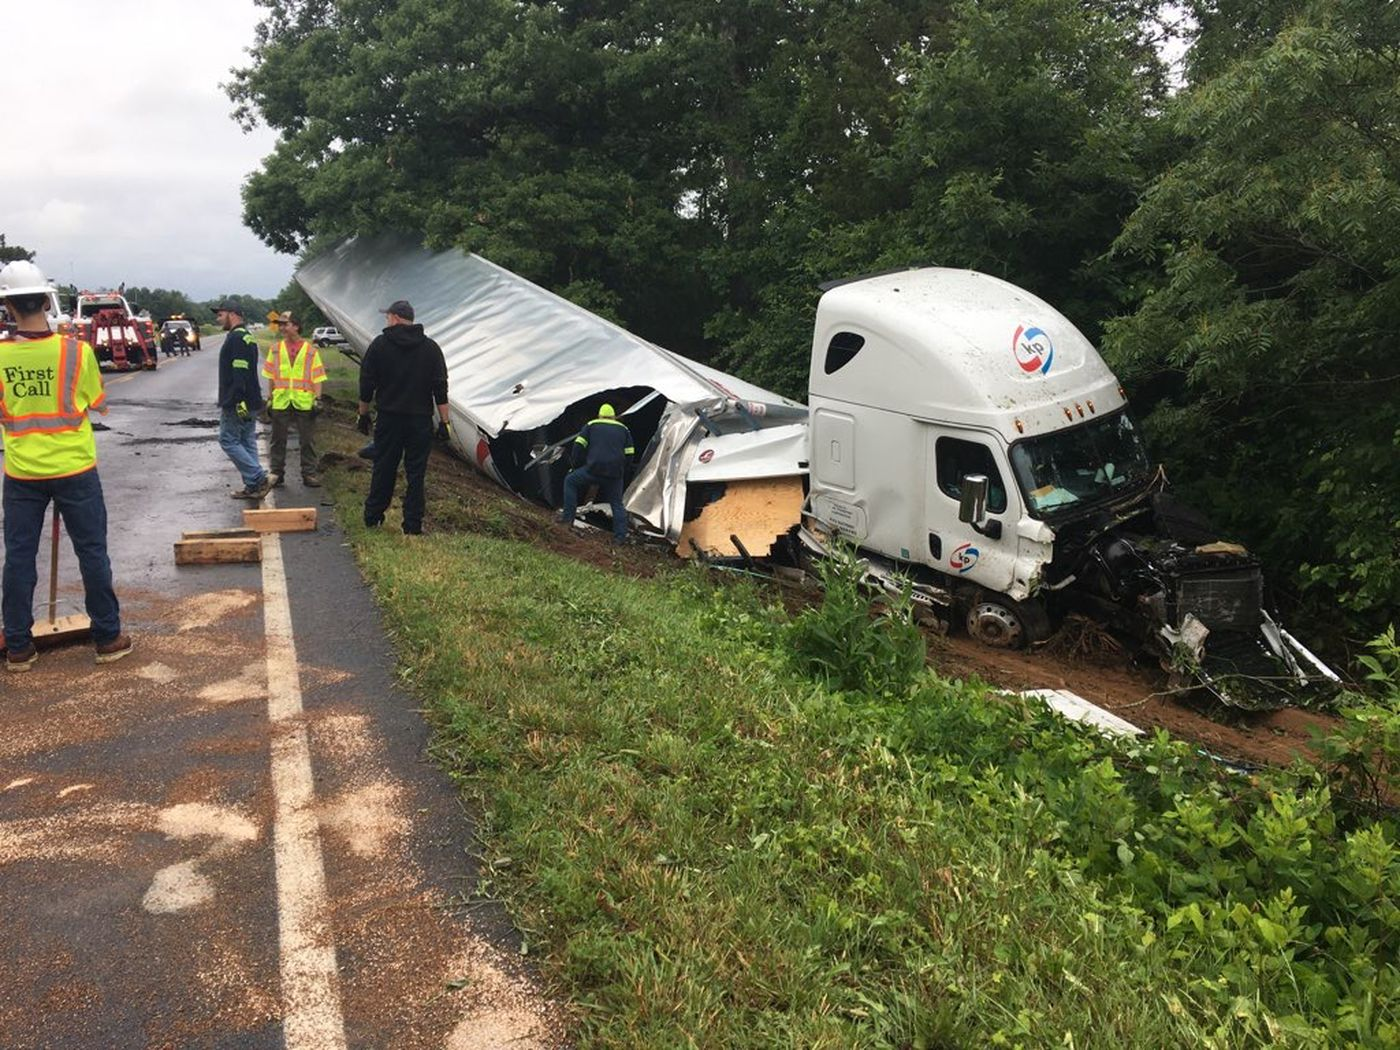 Man airlifted to hospital after tractor-trailer crash in